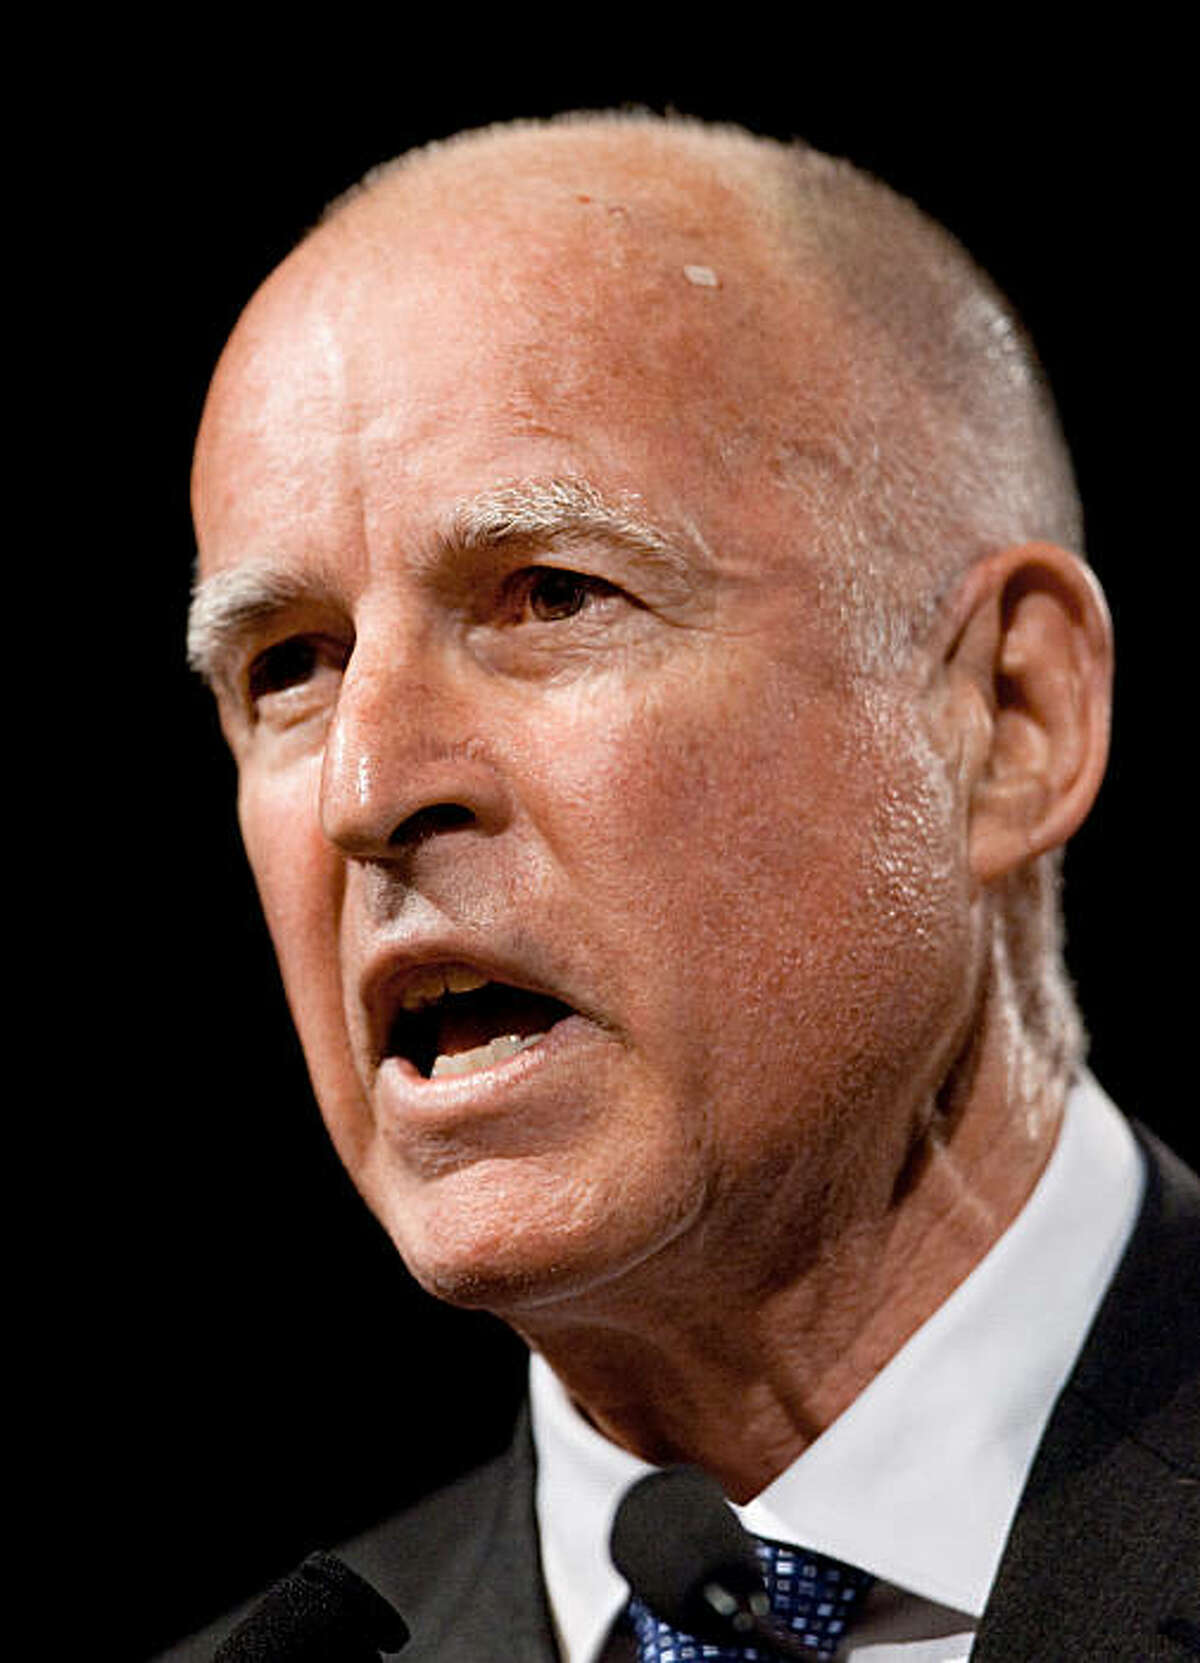 Jerry Brown, state attorney general, speaks to the California Democratic Party state convention in Sacramento, California April 25, 2009. He and San Francisco mayor Gavin Newsom are rivals in the 2010 gubernatorial race. Newsom spoke to the convention earlier.